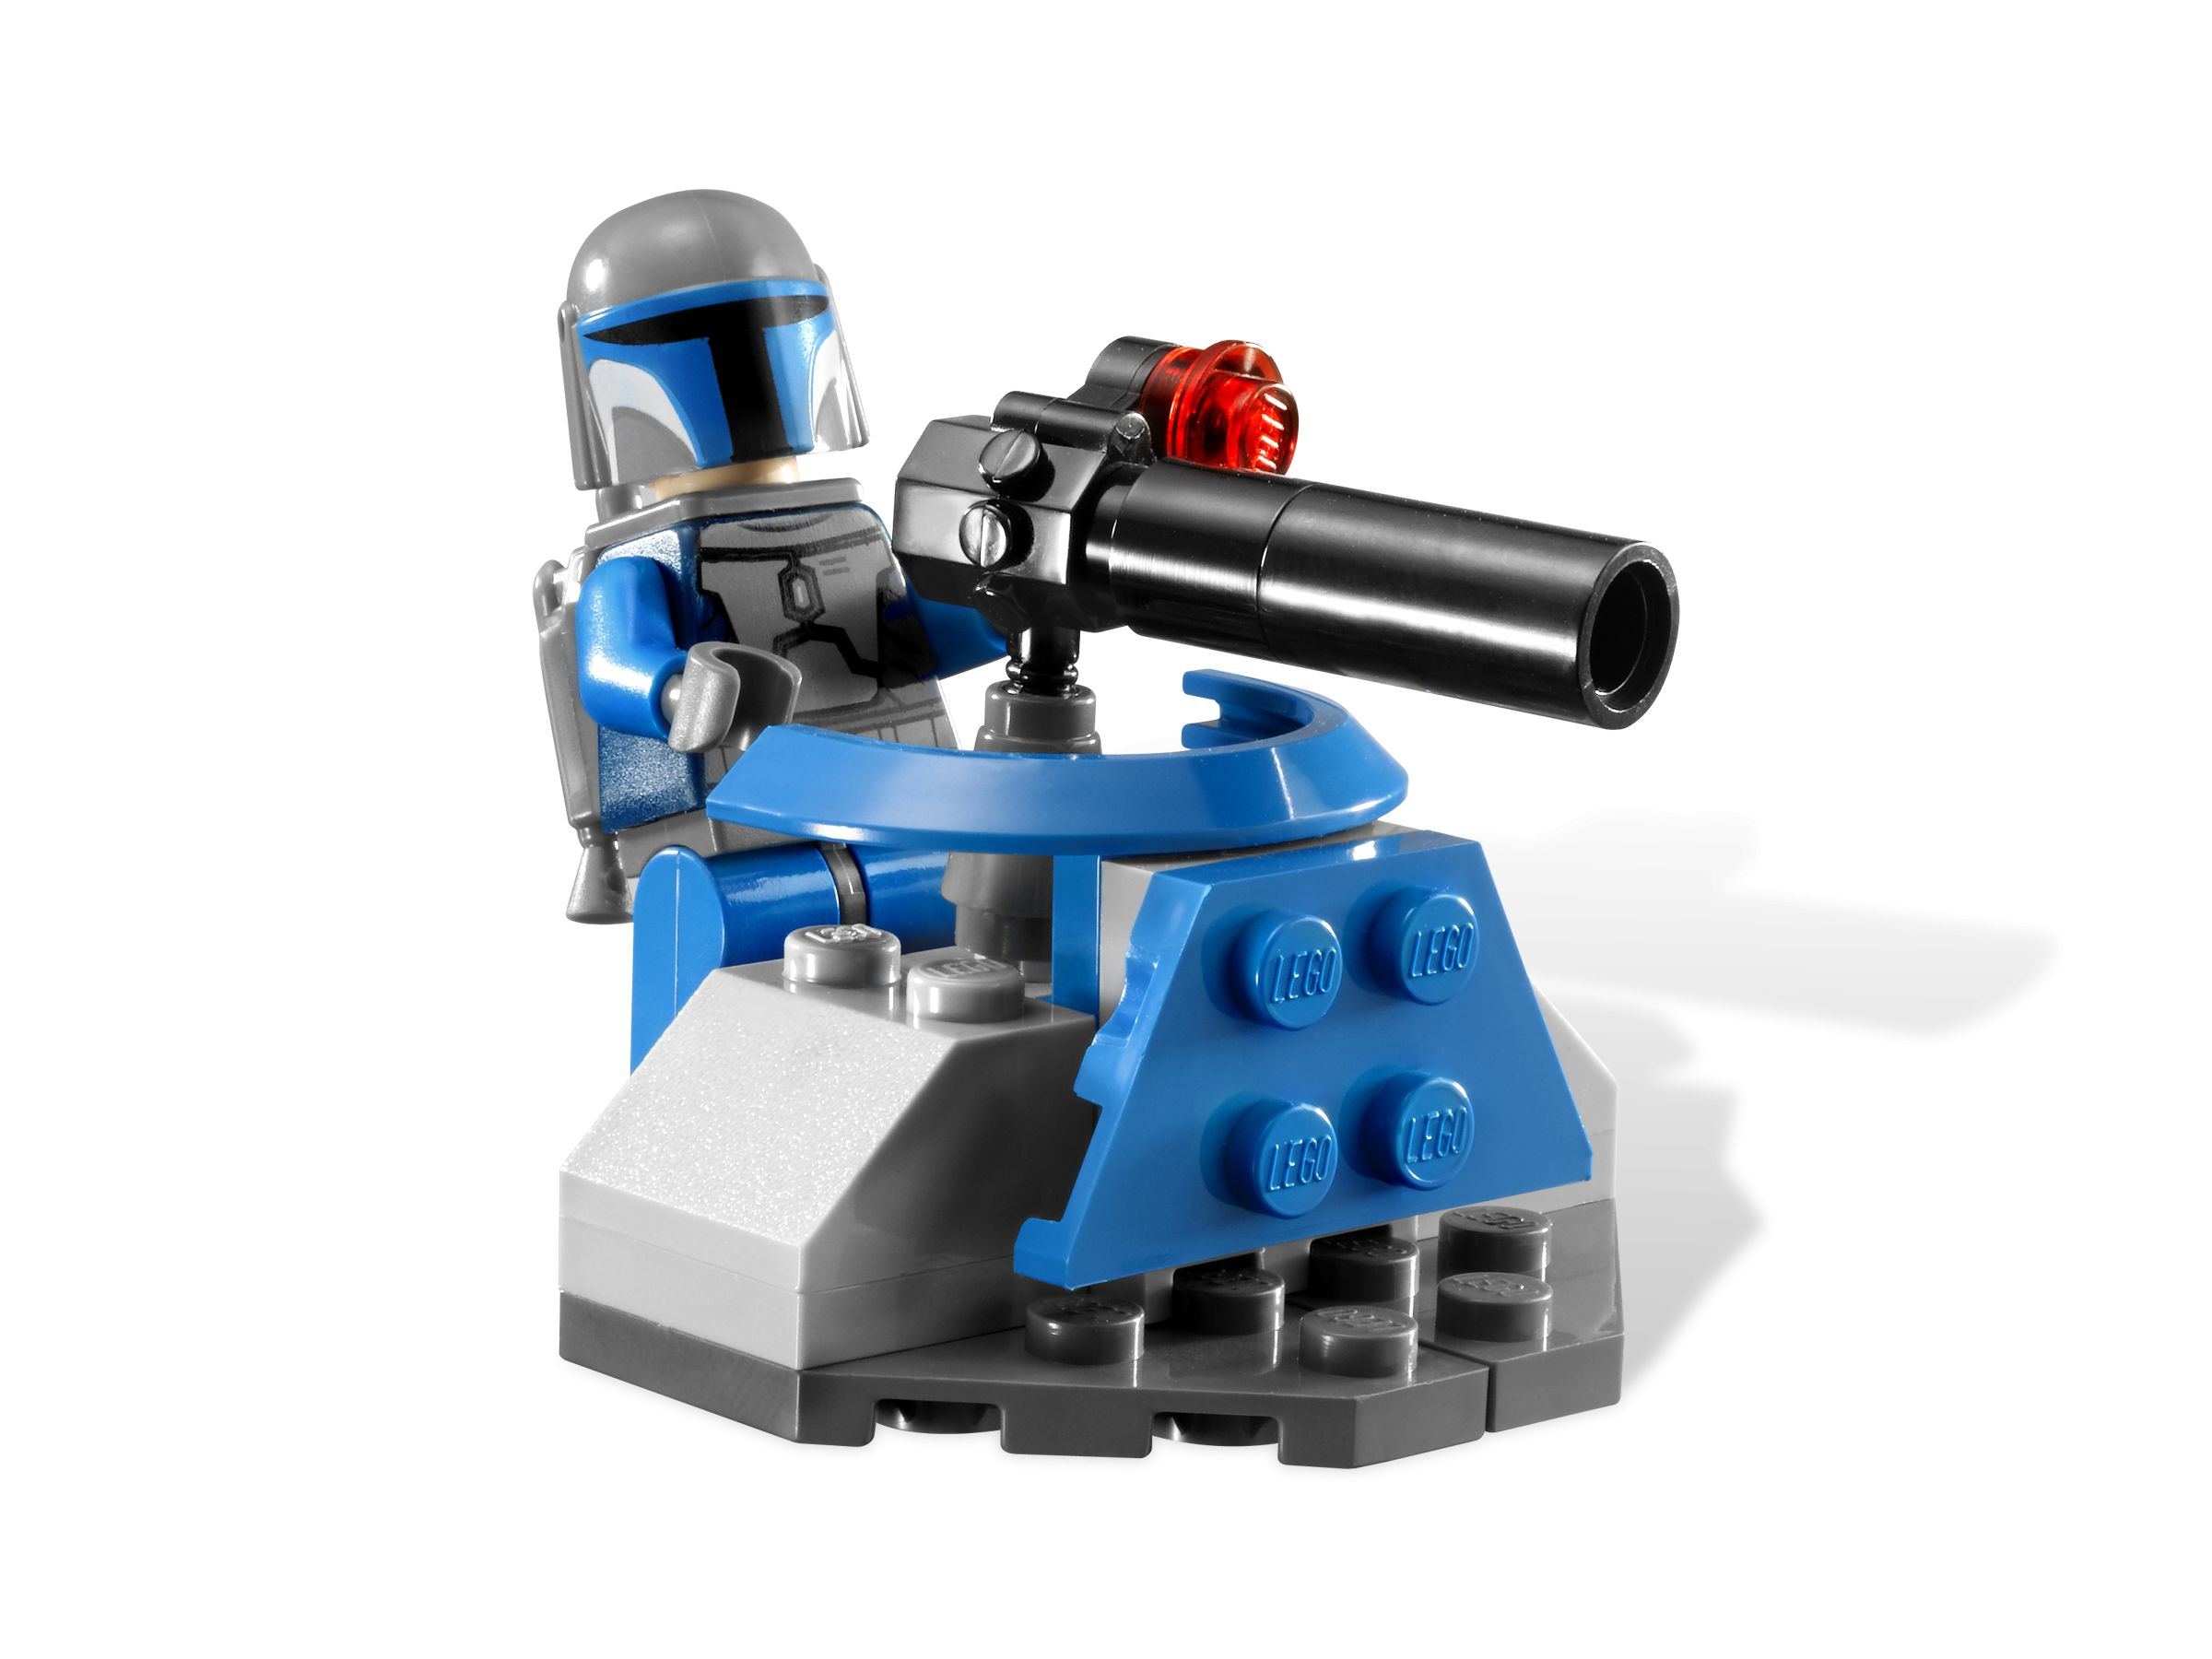 LEGO Star Wars 7914 Mandalorian Battle Pack LEGO_7914_alt3.jpg